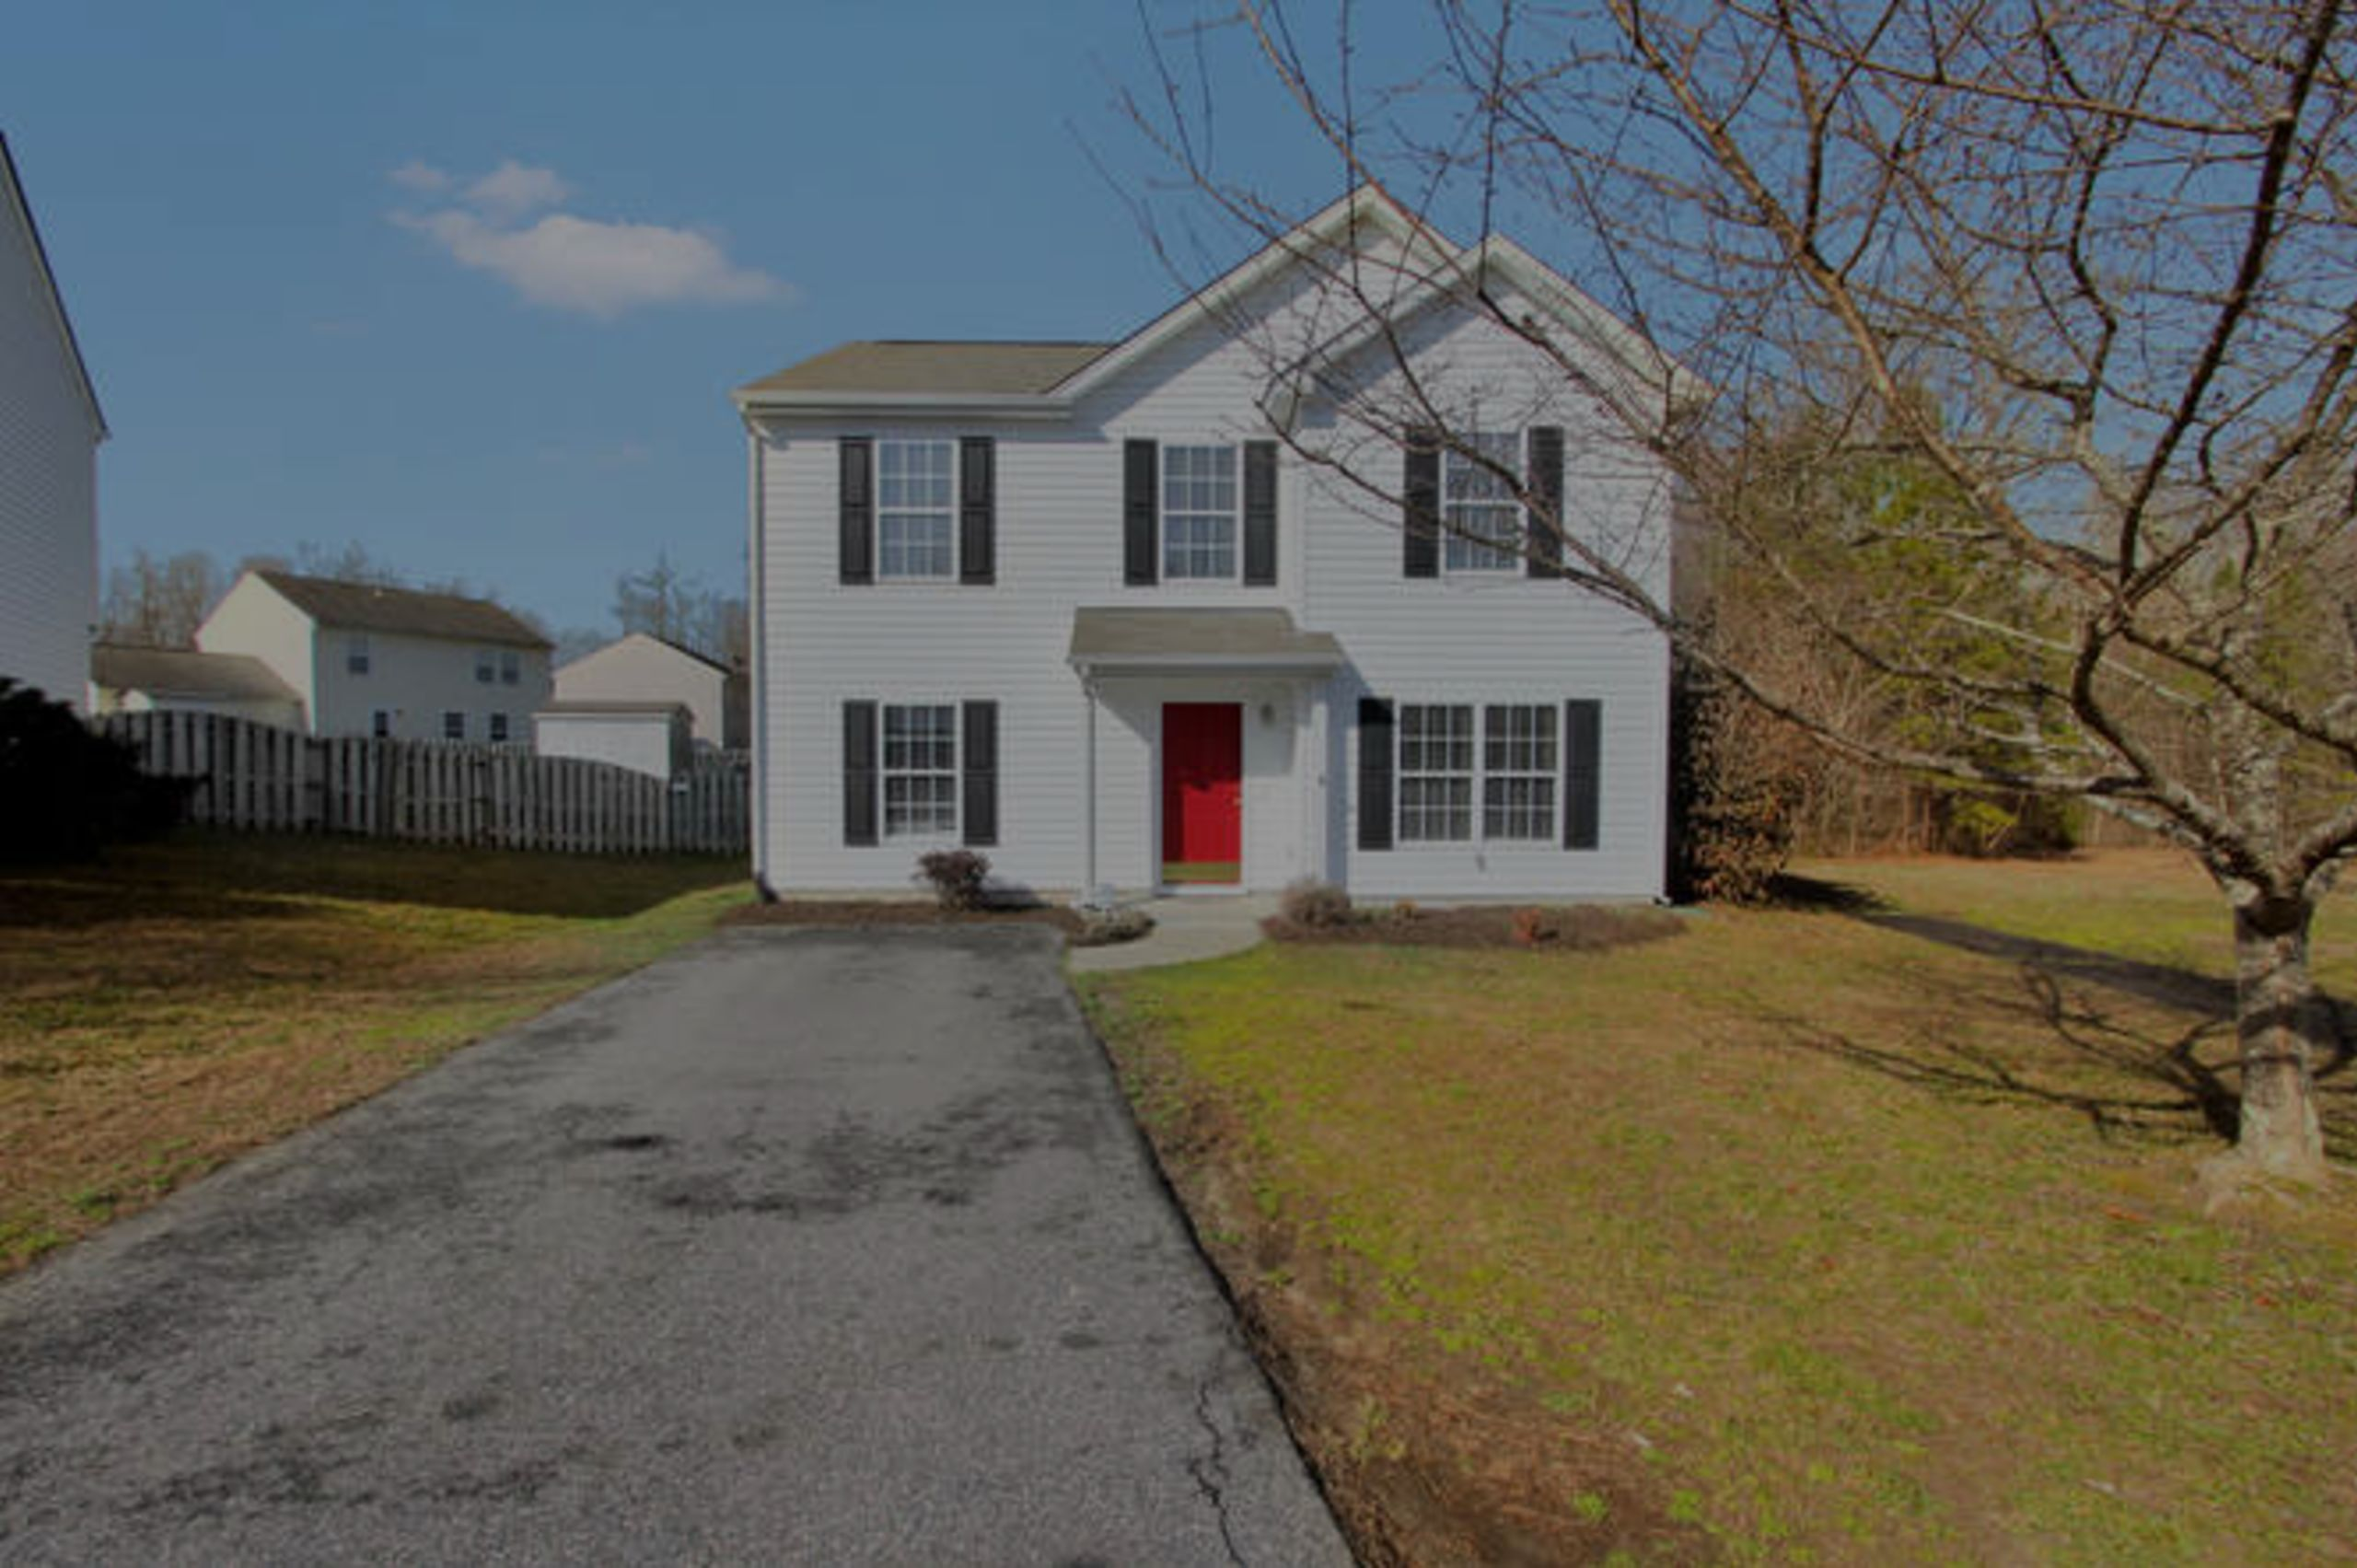 Beautiful 4-Bedroom Cul-de-sac Home in Ashbrook